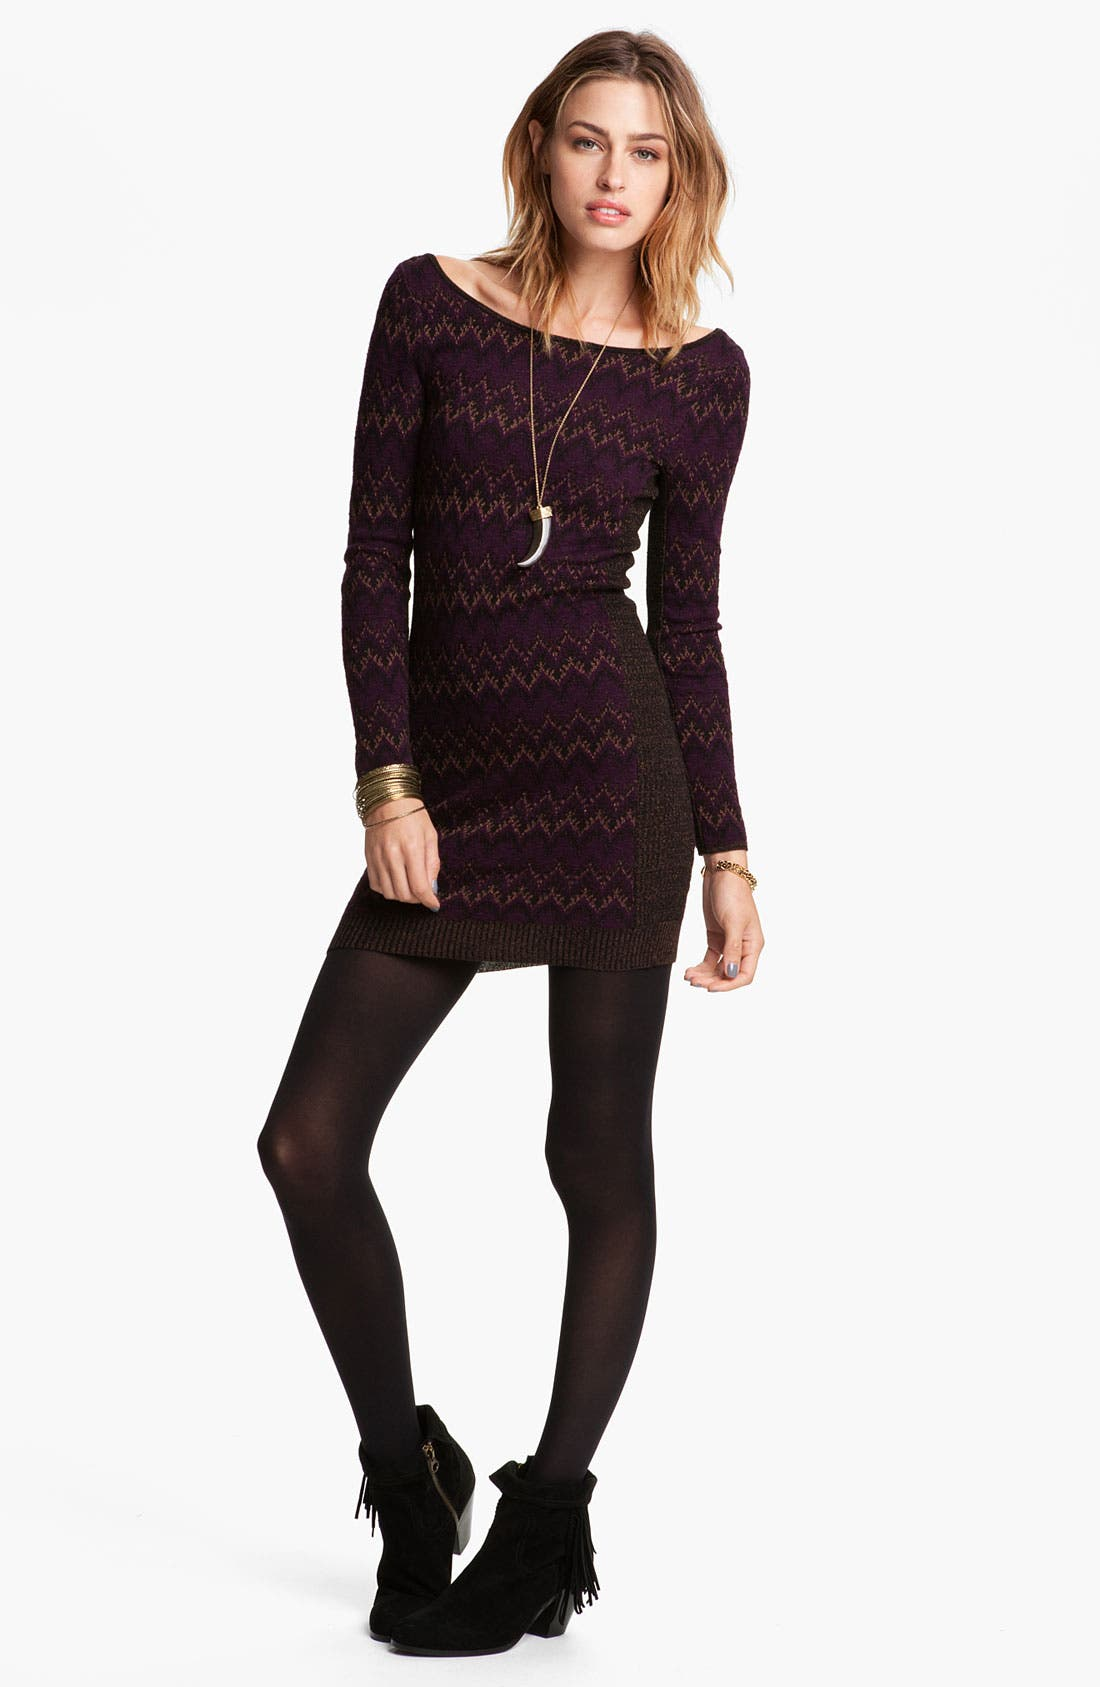 Alternate Image 1 Selected - Free People 'Cozy Cabin' Sweater Dress